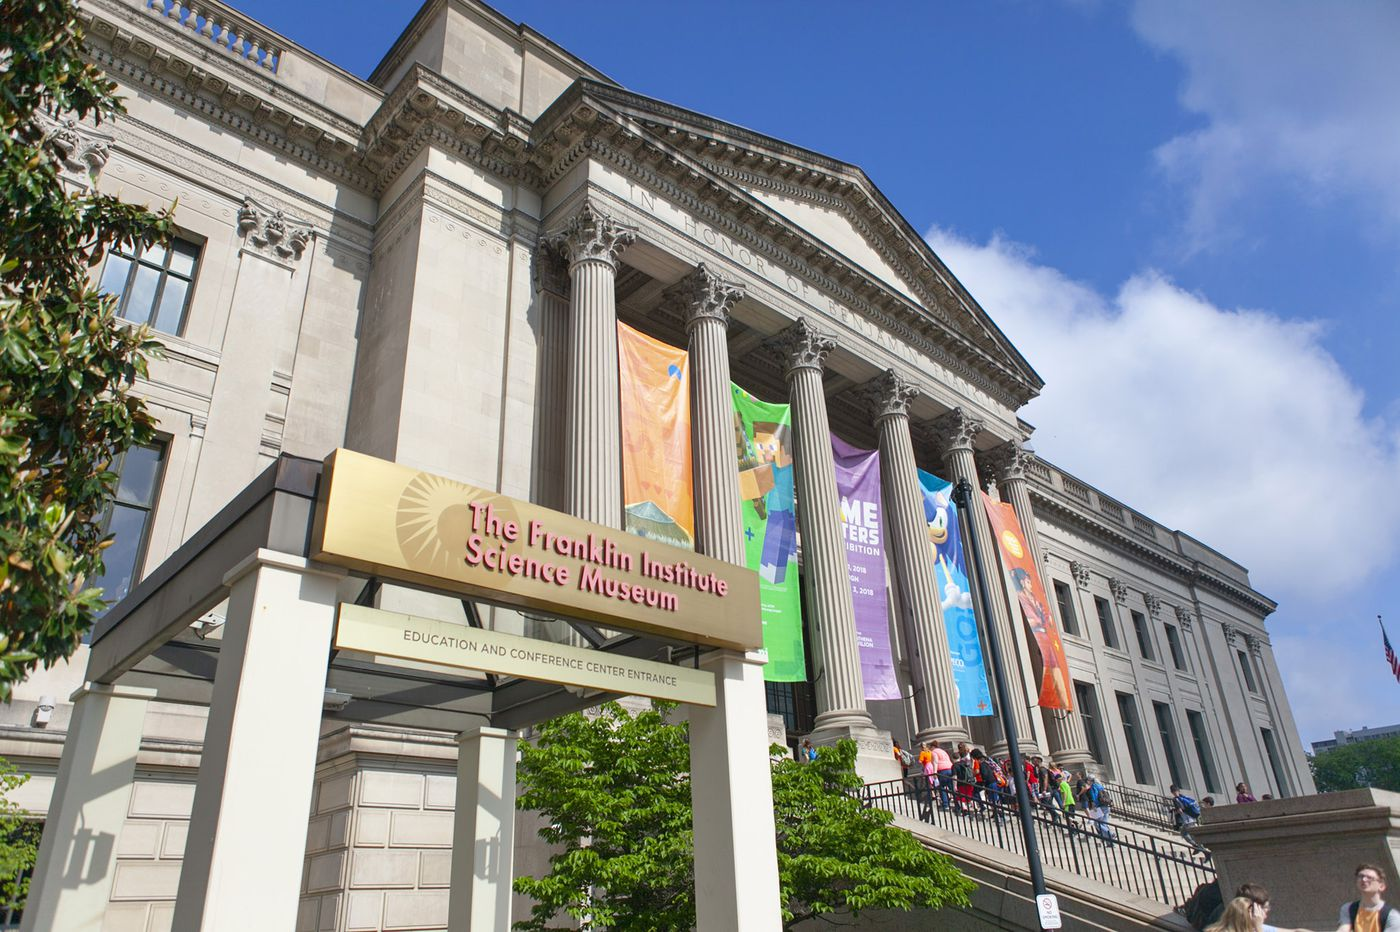 9 11 memorial museum free admission tuesdays march 26